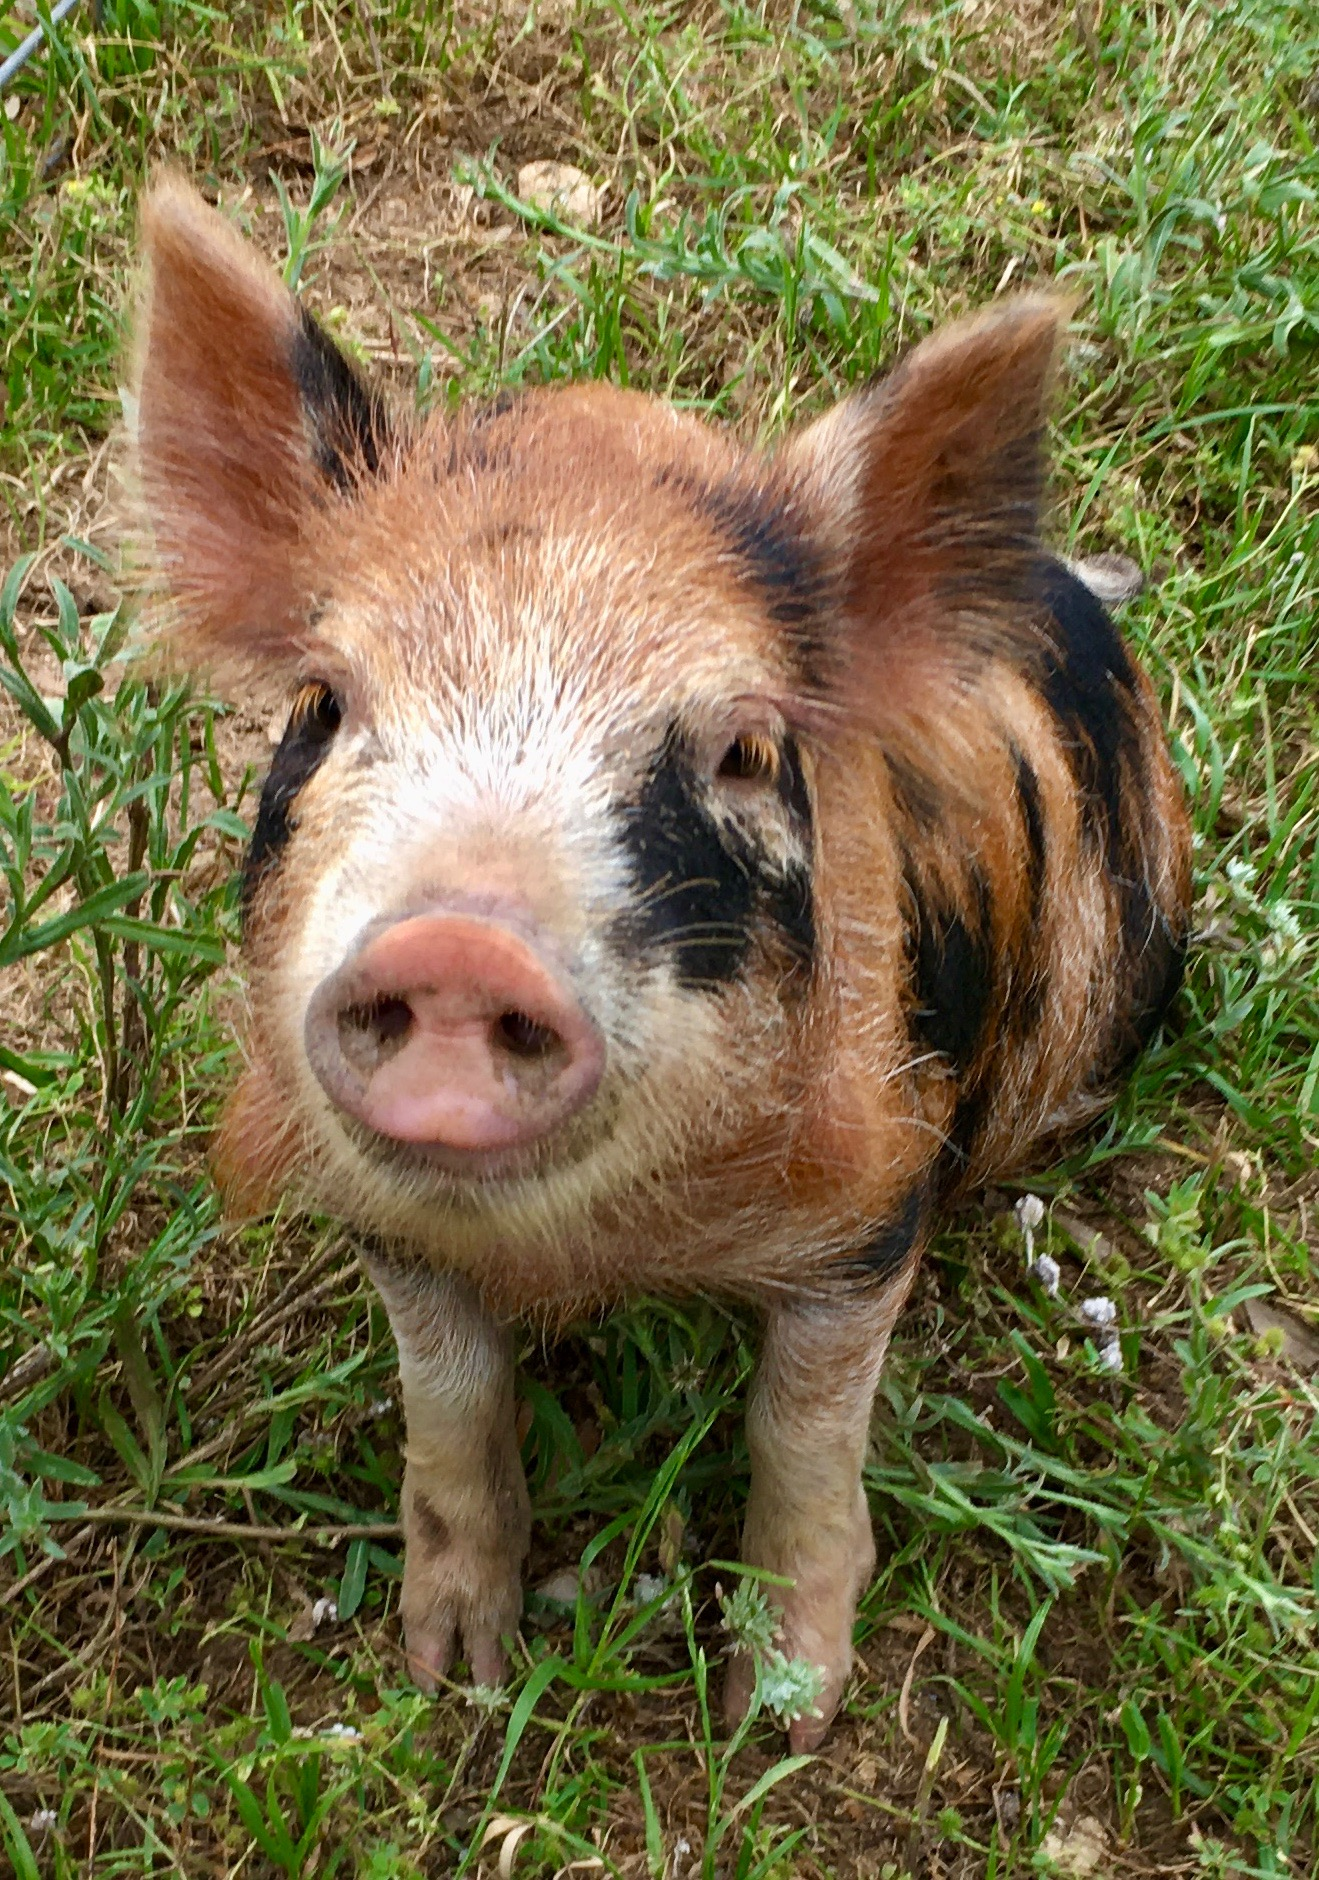 Pigs can help turn the compost pile